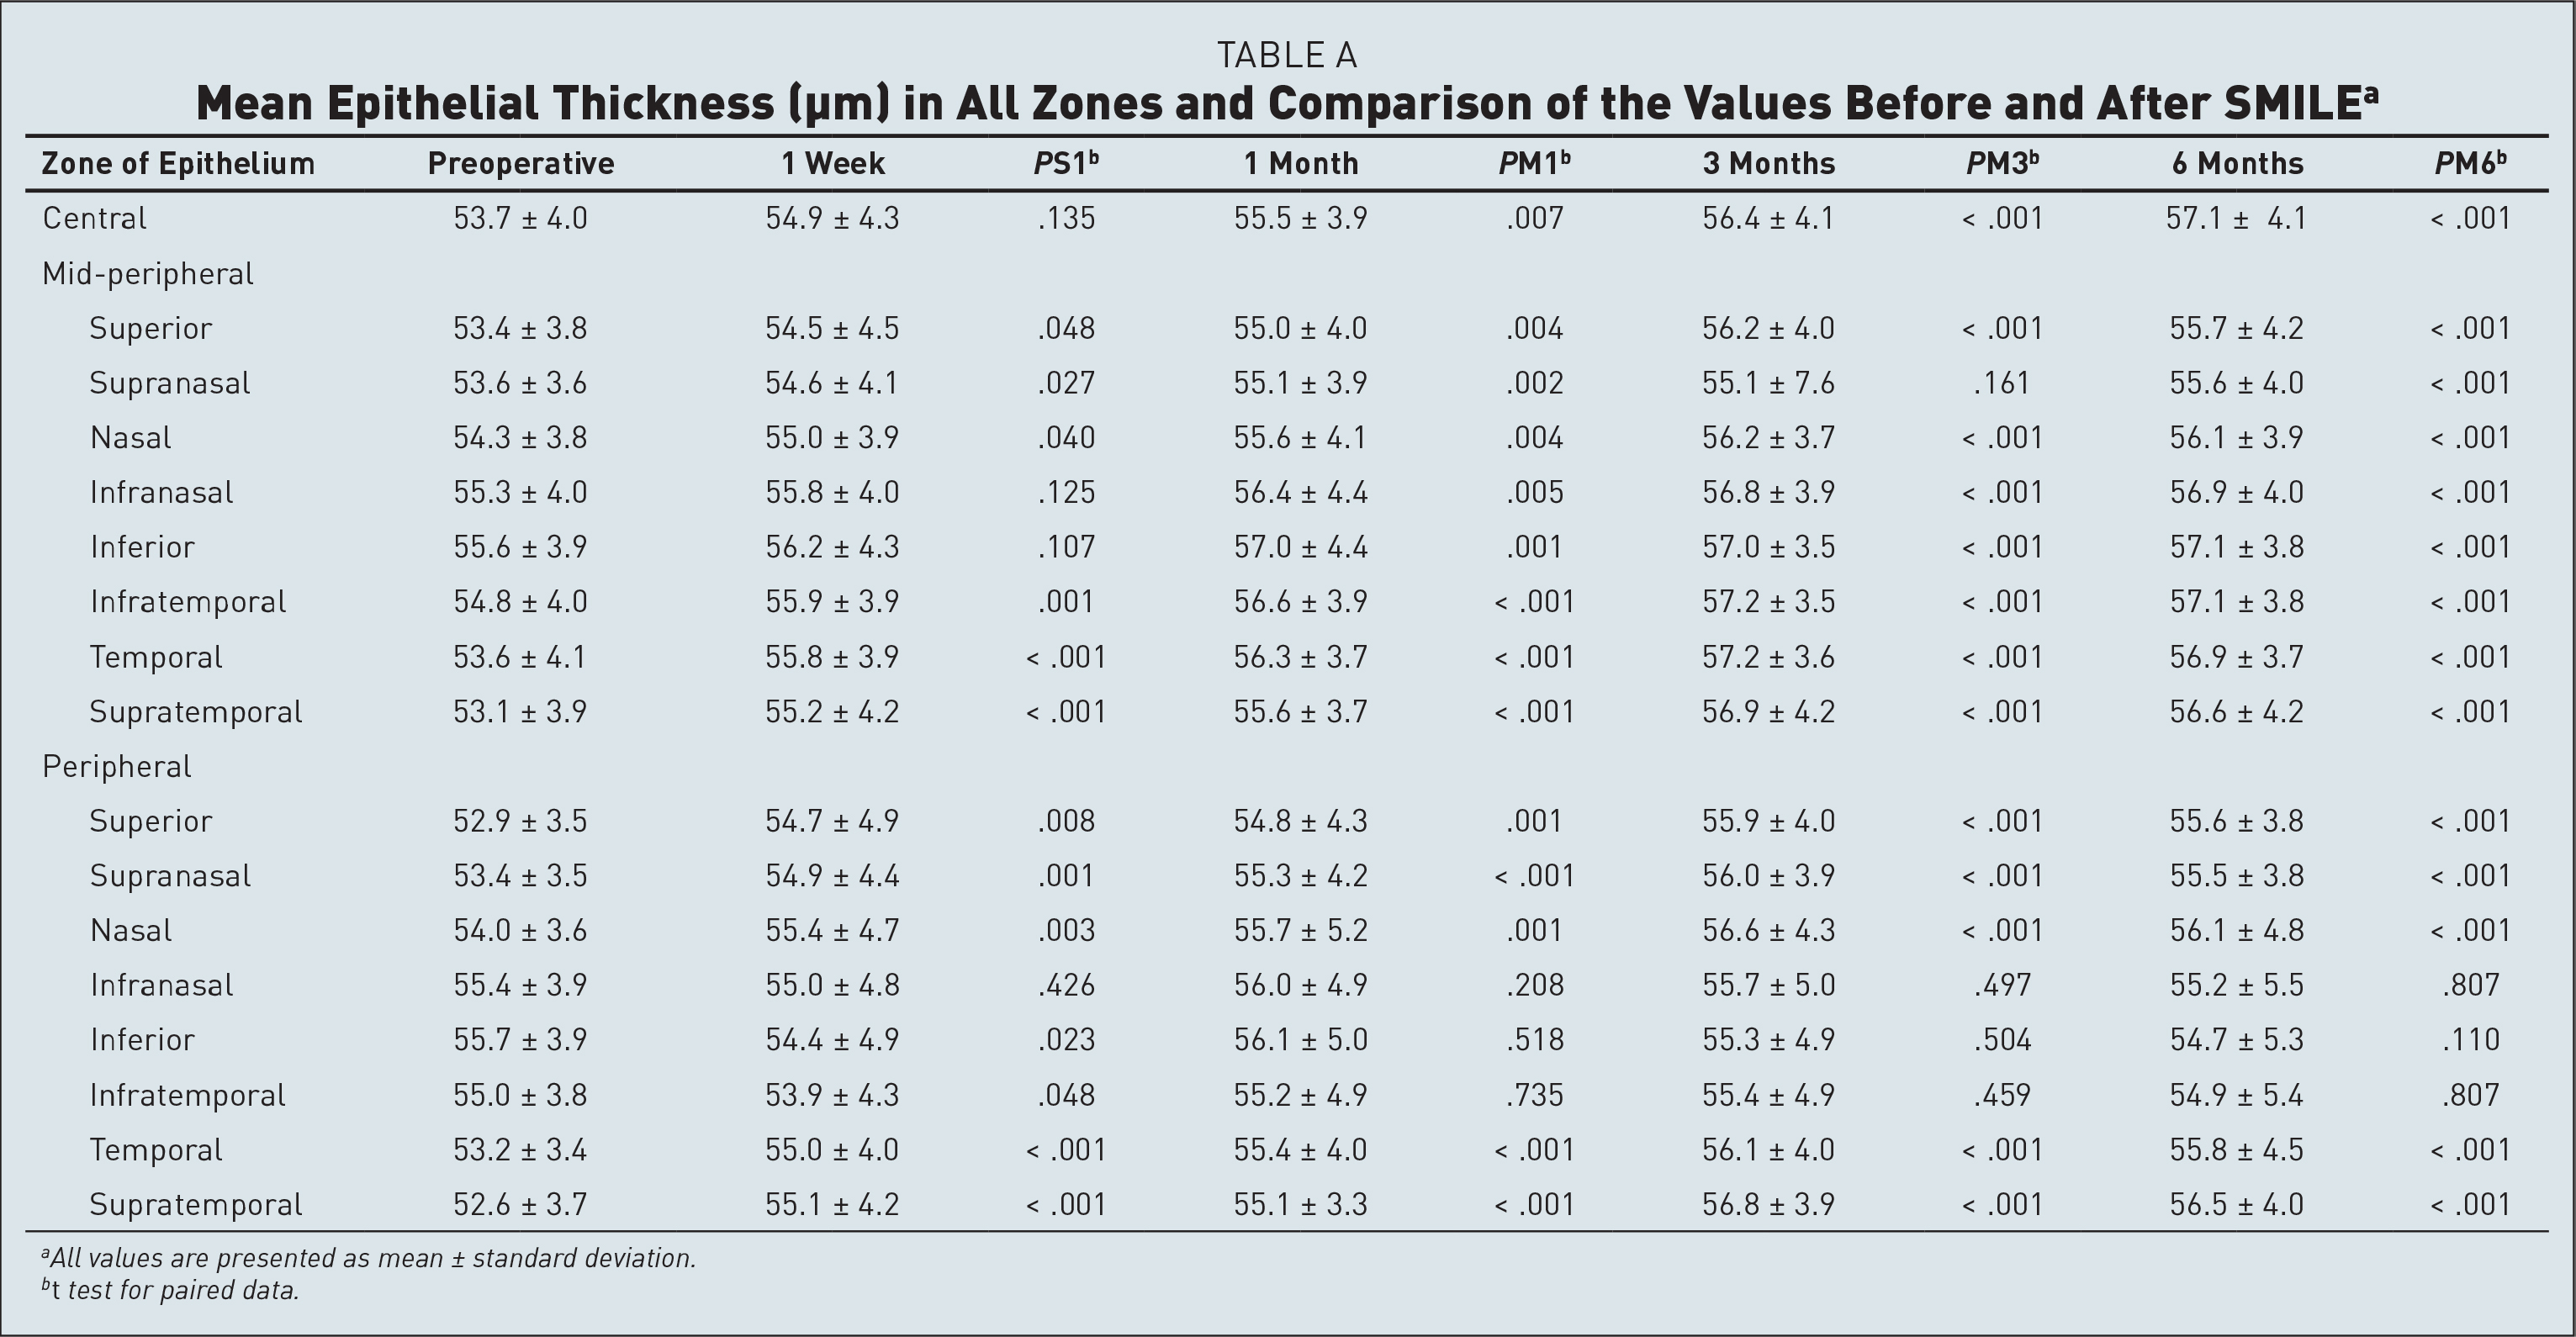 Mean Epithelial Thickness (µm) in All Zones and Comparison of the Values Before and After SMILEa